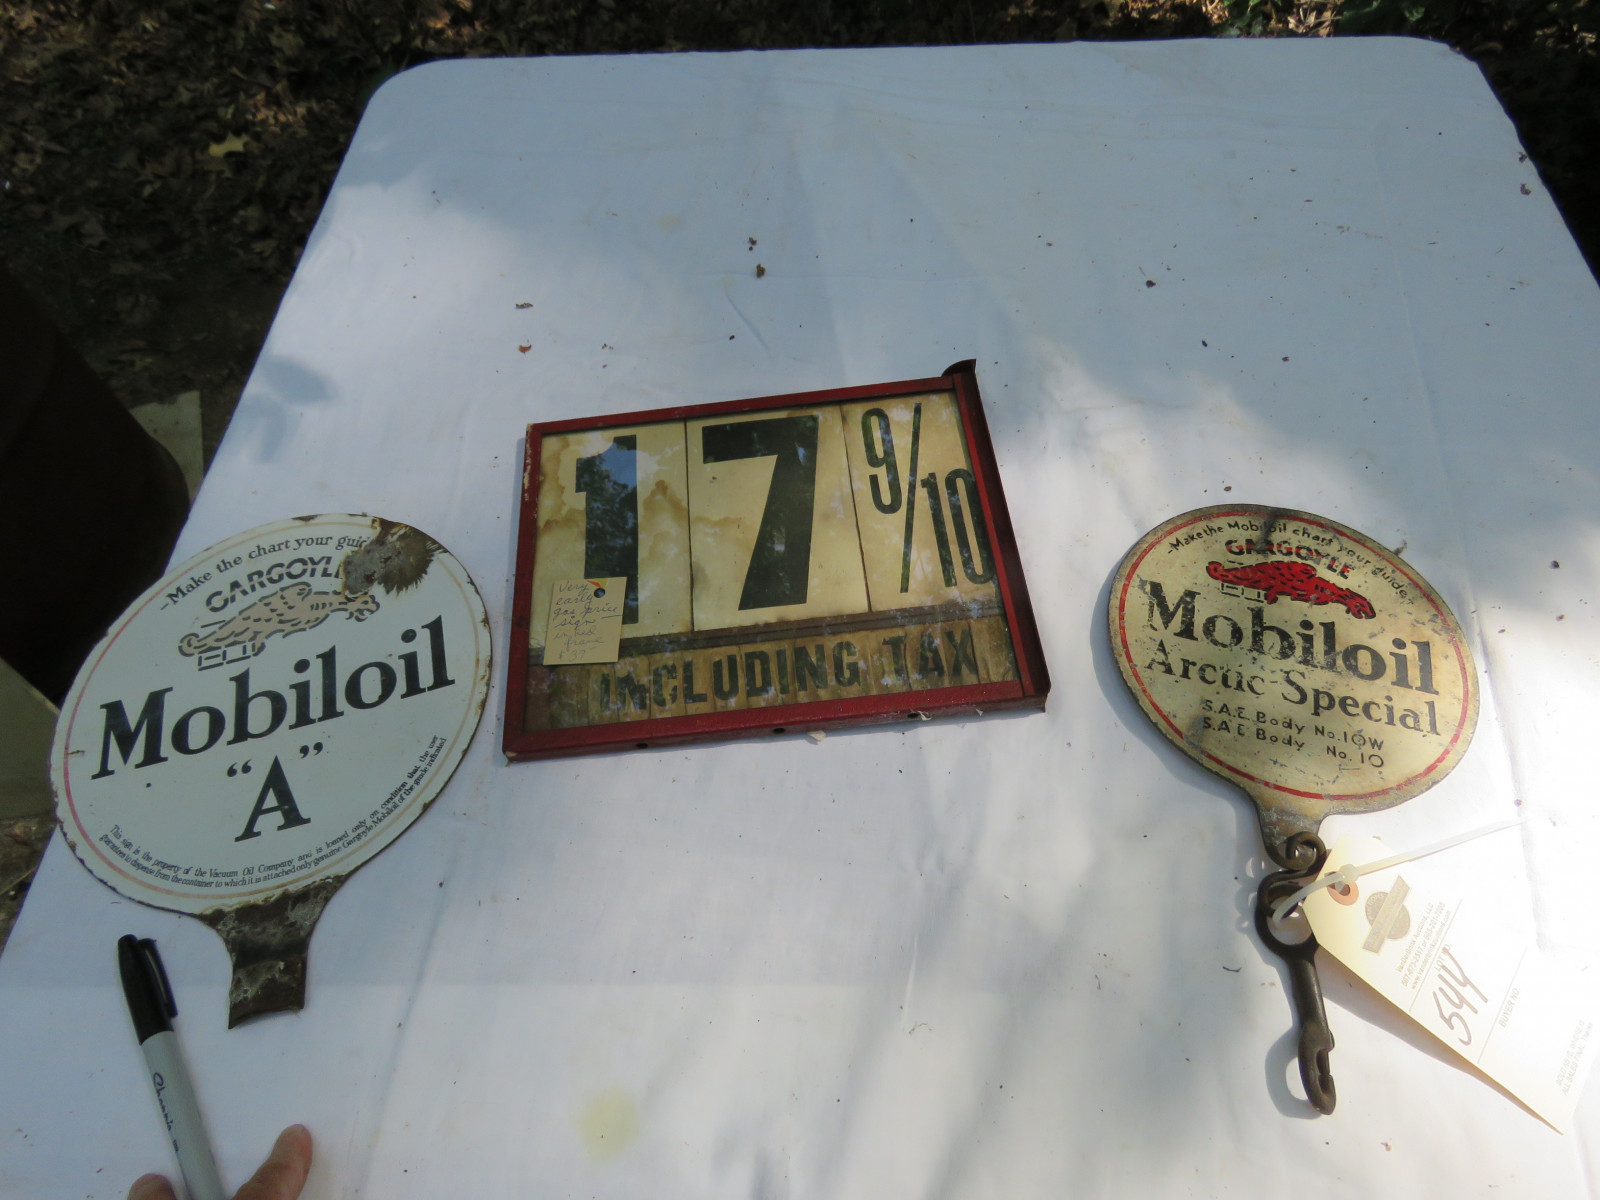 Mobiloil Gas Pump Porcelain Pump Tags and Measure Group - Image 2